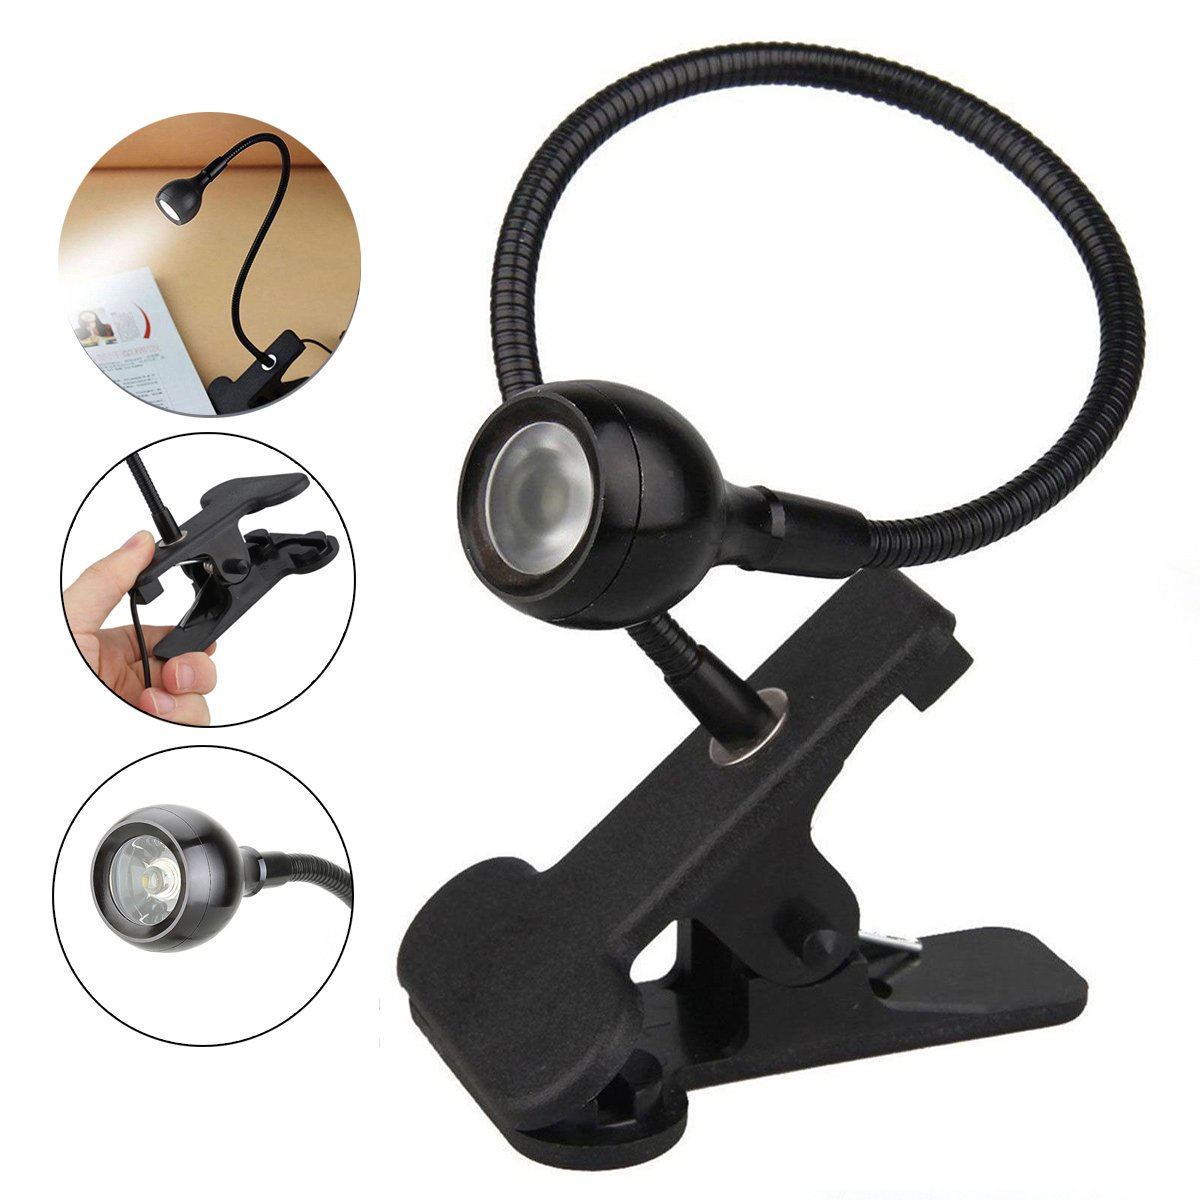 Flexible Neck LED Novelty Light Clip-on Book Reading Delicate Lamp Widely Used for Home Office Table Desk Bedside Podium Product Display Stand Repair Small Work etc. MDS4A